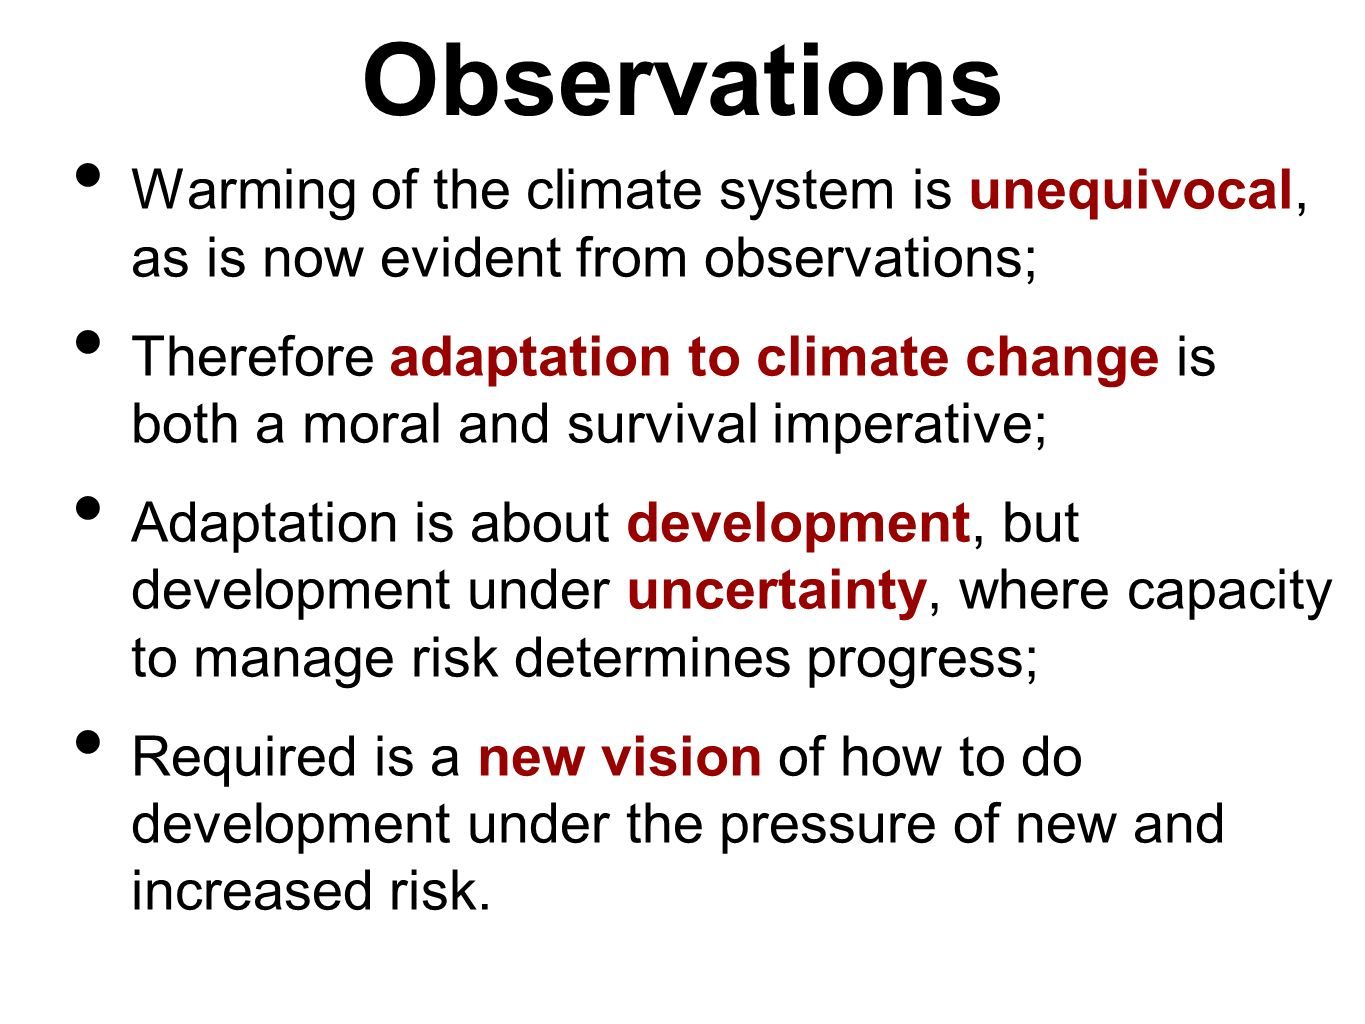 Observations Warming of the climate system is unequivocal, as is now evident from observations; Therefore adaptation to climate change is both a moral and survival imperative; Adaptation is about development, but development under uncertainty, where capacity to manage risk determines progress; Required is a new vision of how to do development under the pressure of new and increased risk.